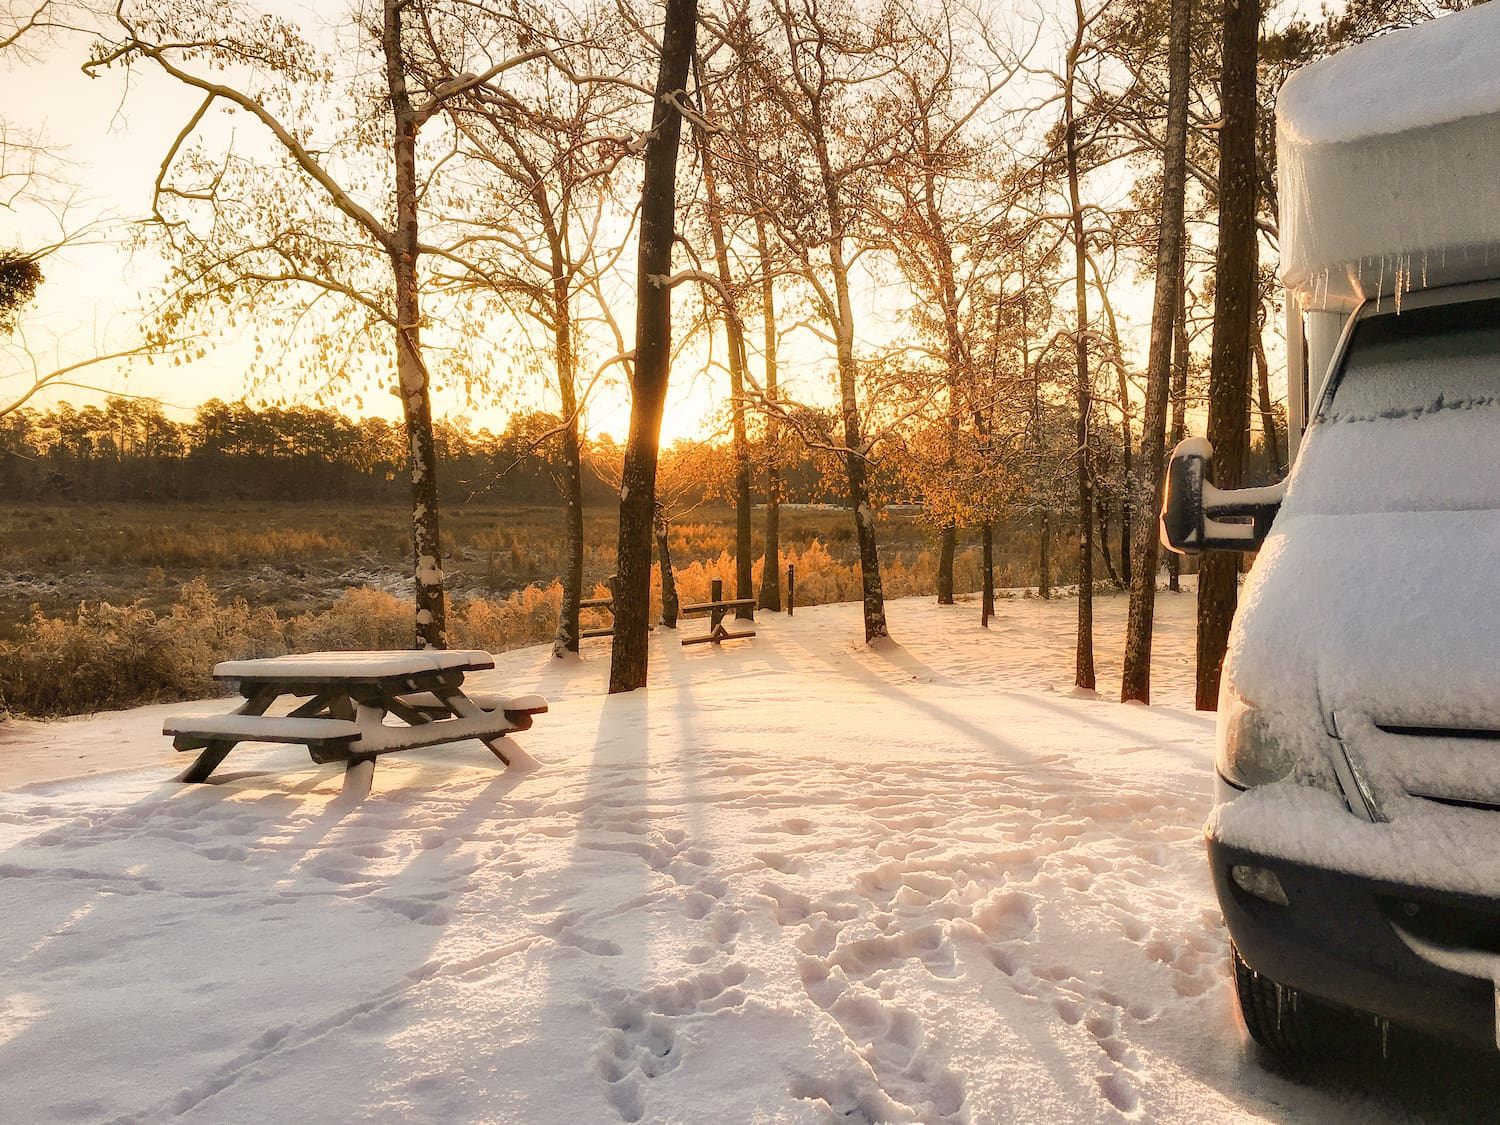 frozen RV camper parked at sunrise with picnic table in the background